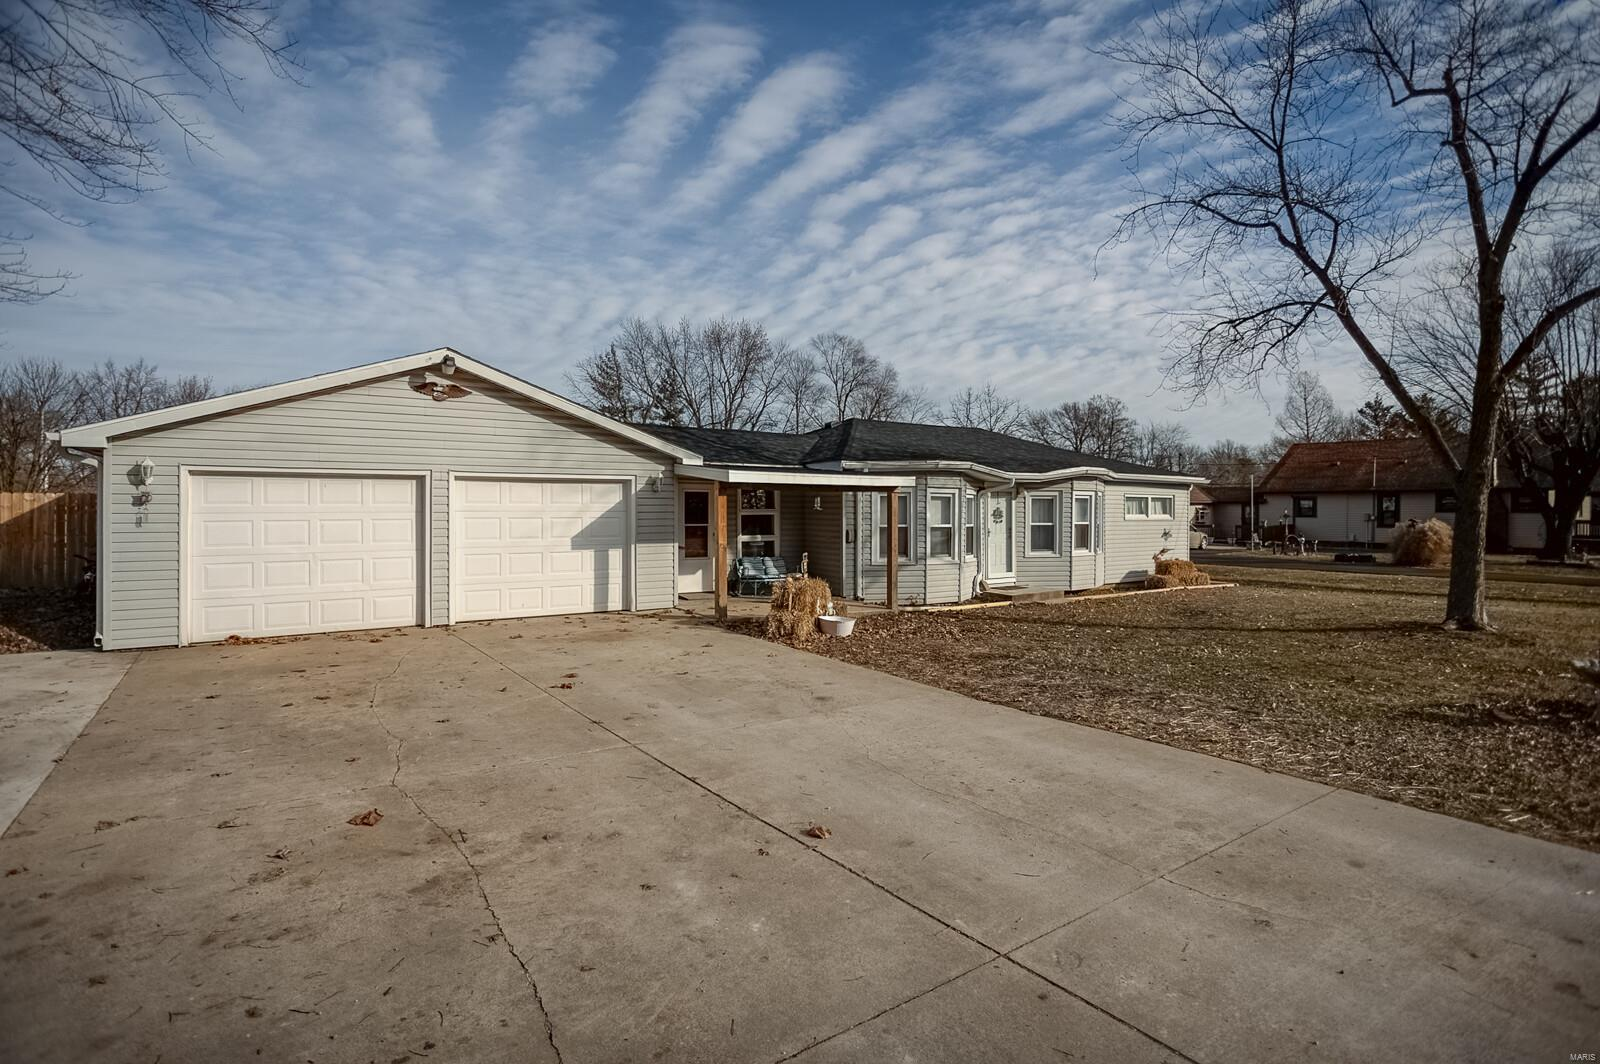 511 E Morgan Property Photo - Bunker Hill, IL real estate listing